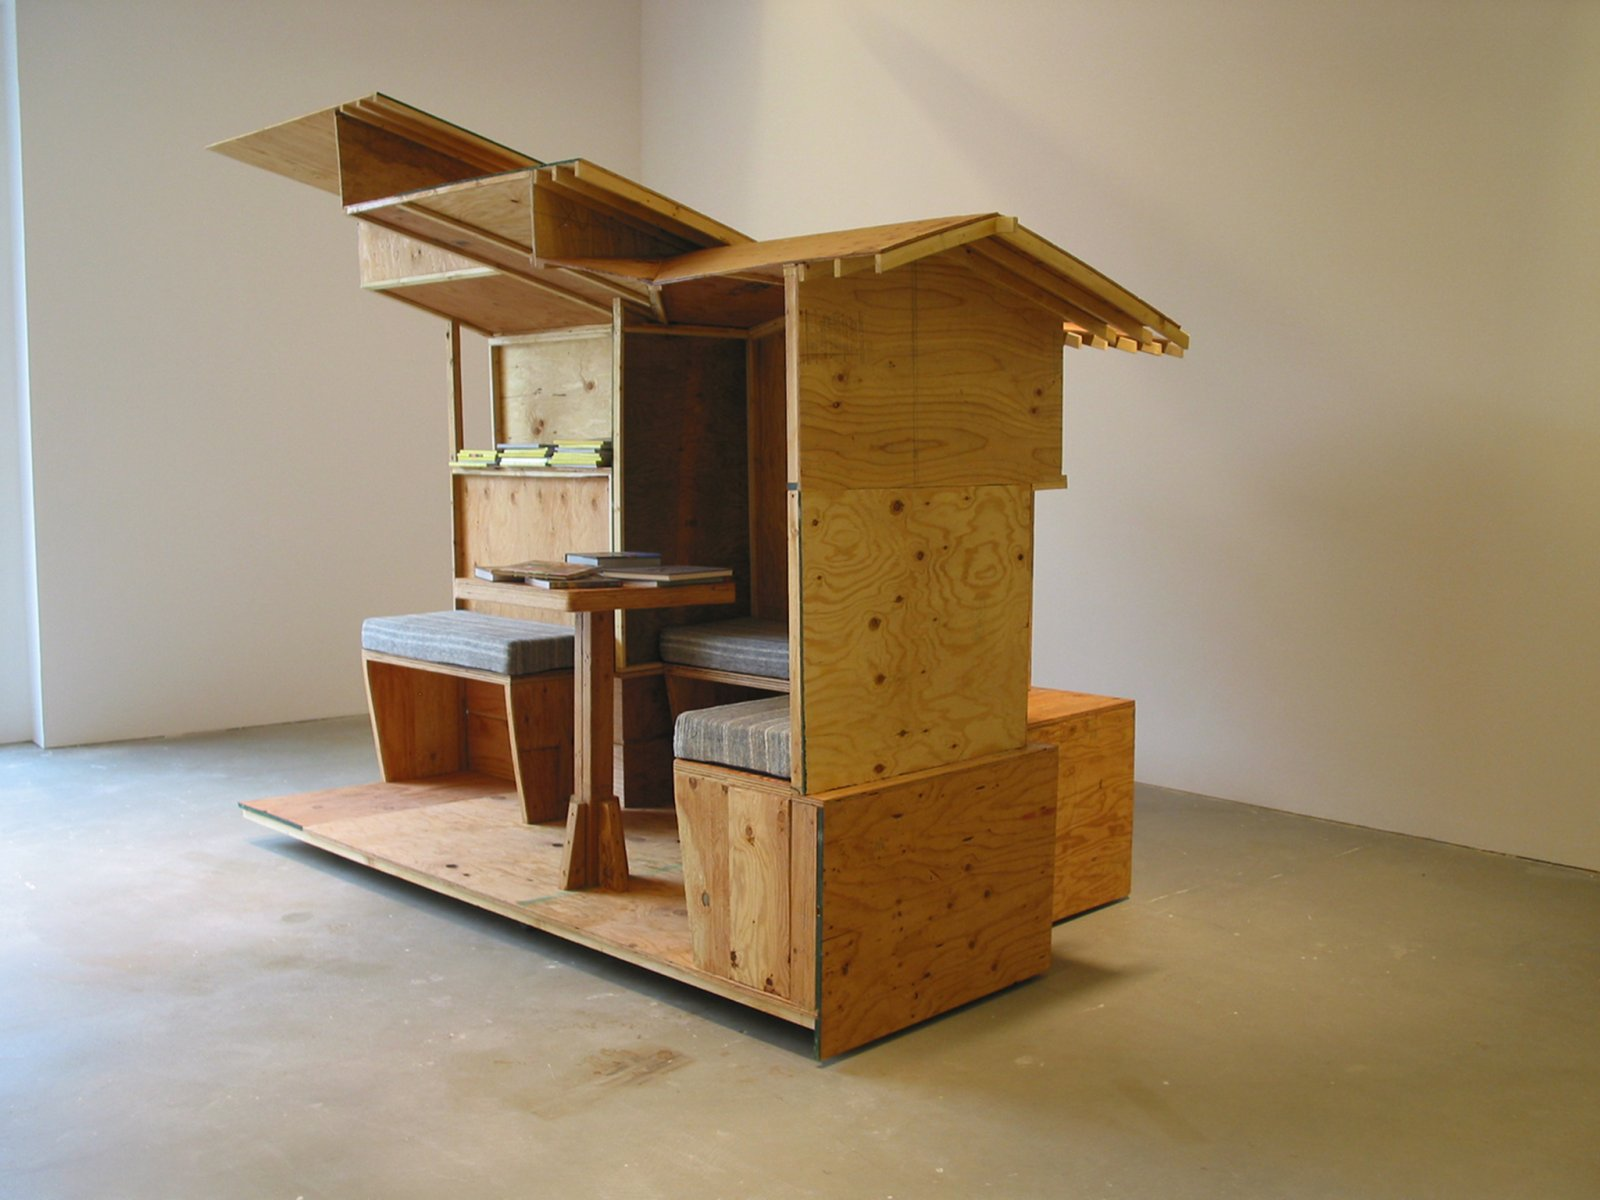 Brian Jungen,Arts and Crafts Book Depository / CappStreet Project 2004, 2004,architectural model (scale of Greene and Greene's Gamble House) made of plywood sectioned into 4 quadrants, locking castors, bookshelves, 2 framed glass cabinets with electrical source and lighting unit, hand-made fabric pillows for seating benches, video monitor, ongoing accumulation of library inventory of magazines, journals, books and videos, 108 x 192 x 252 in. (274 x 488 x 640 cm)